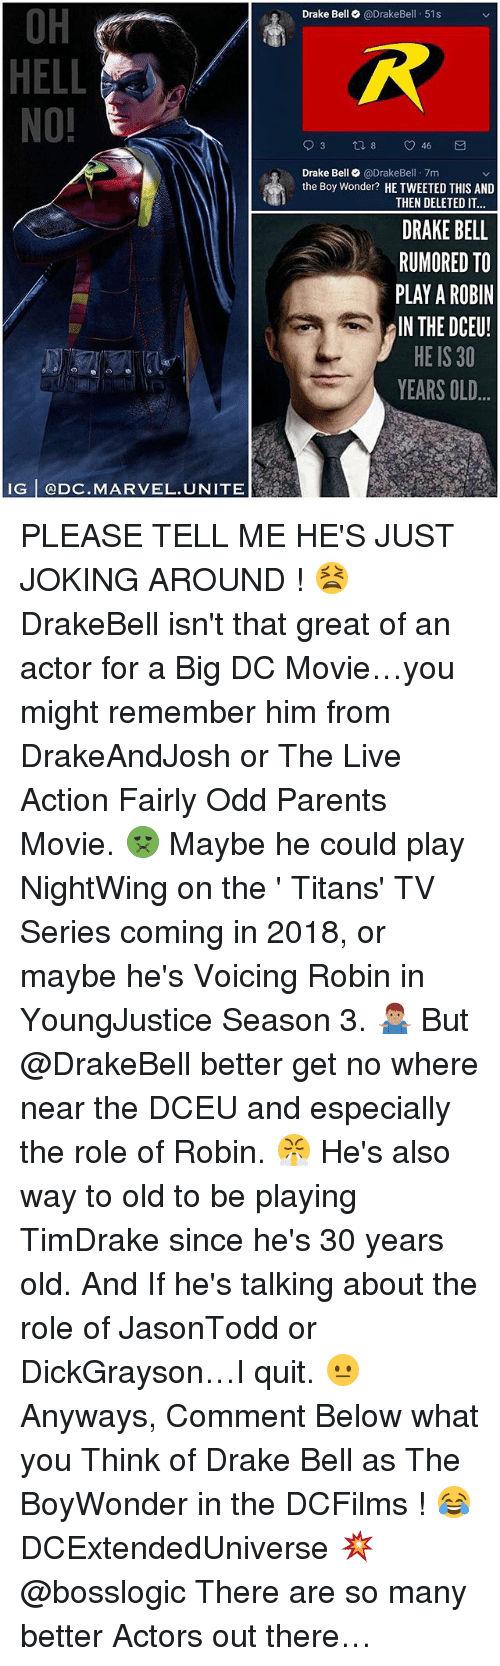 Hells No: OH  HELL  NO!  Drake Bell @DrakeBell 51s  Drake Bell@DrakeBel 7m  the Boy Wonder? HE TWEETED THIS AND  THEN DELETED IT  DRAKE BELL  RUMORED TO  PLAY A ROBIN  IN THE DCEU!  HE IS 30  YEARS OLD  IG @DC.MARVEL.UNITE PLEASE TELL ME HE'S JUST JOKING AROUND ! 😫 DrakeBell isn't that great of an actor for a Big DC Movie…you might remember him from DrakeAndJosh or The Live Action Fairly Odd Parents Movie. 🤢 Maybe he could play NightWing on the ' Titans' TV Series coming in 2018, or maybe he's Voicing Robin in YoungJustice Season 3. 🤷🏽♂️ But @DrakeBell better get no where near the DCEU and especially the role of Robin. 😤 He's also way to old to be playing TimDrake since he's 30 years old. And If he's talking about the role of JasonTodd or DickGrayson…I quit. 😐 Anyways, Comment Below what you Think of Drake Bell as The BoyWonder in the DCFilms ! 😂 DCExtendedUniverse 💥 @bosslogic There are so many better Actors out there…